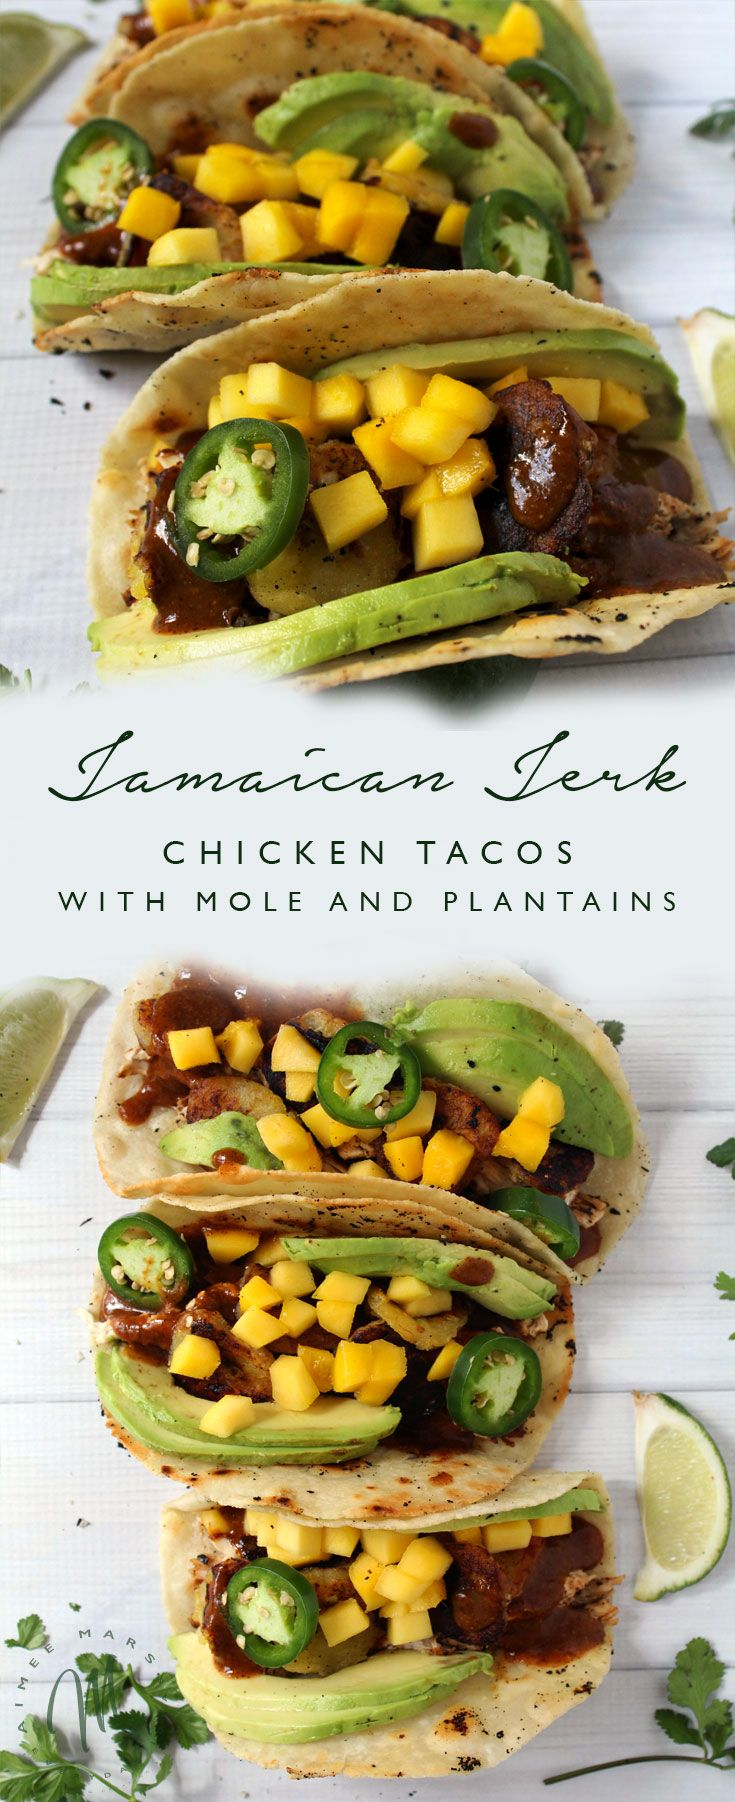 Spice up your taco dinner with this Jamaican Jerk Chicken Taco with Mole and Fried Plantains recipe and transport yourself to the island of no worries | via aimeemars.com | #Tacos #JamaicanJerkChicken #MoleSauce #FriedPlantains